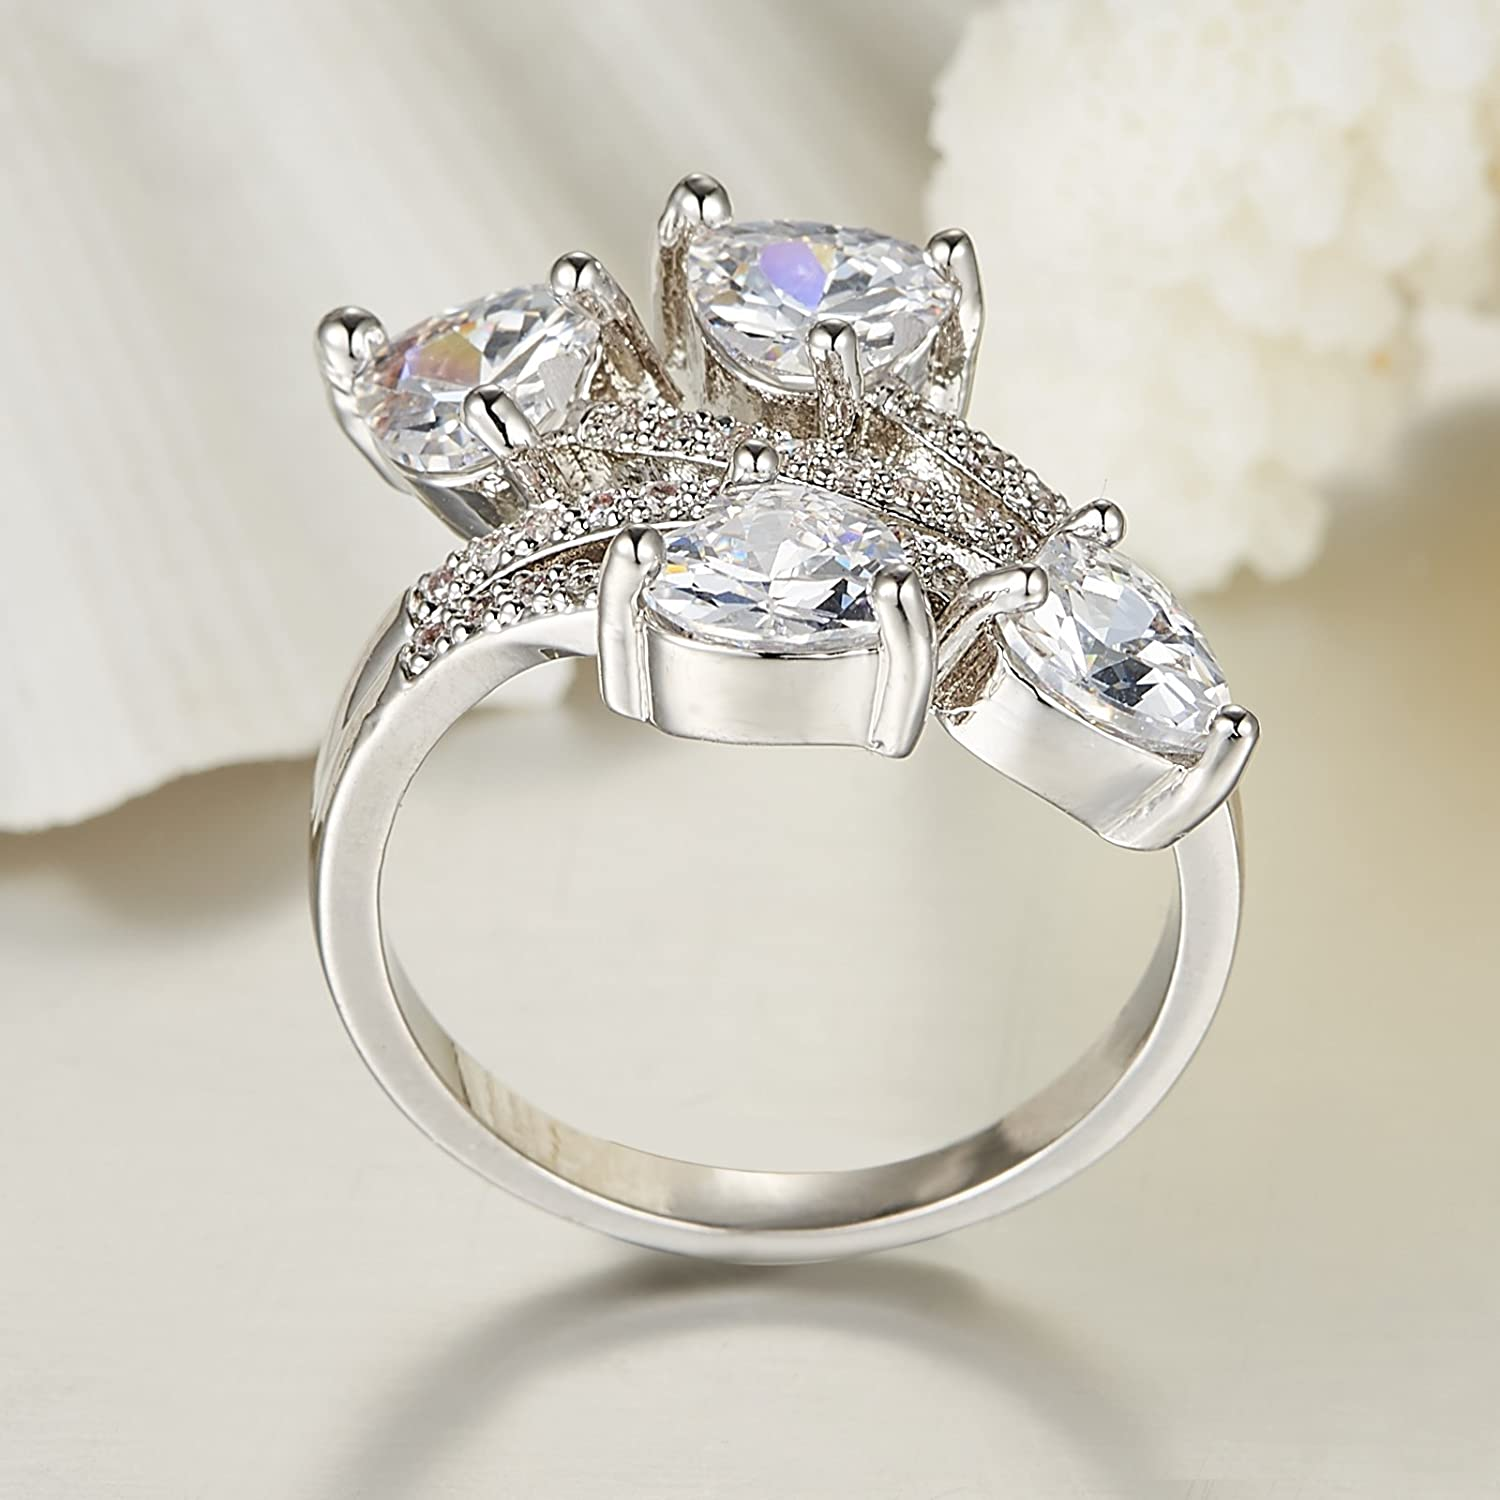 Psiroy 925 Sterling Silver Created White Topaz Filled Bypass Band Heart Engagement Ring